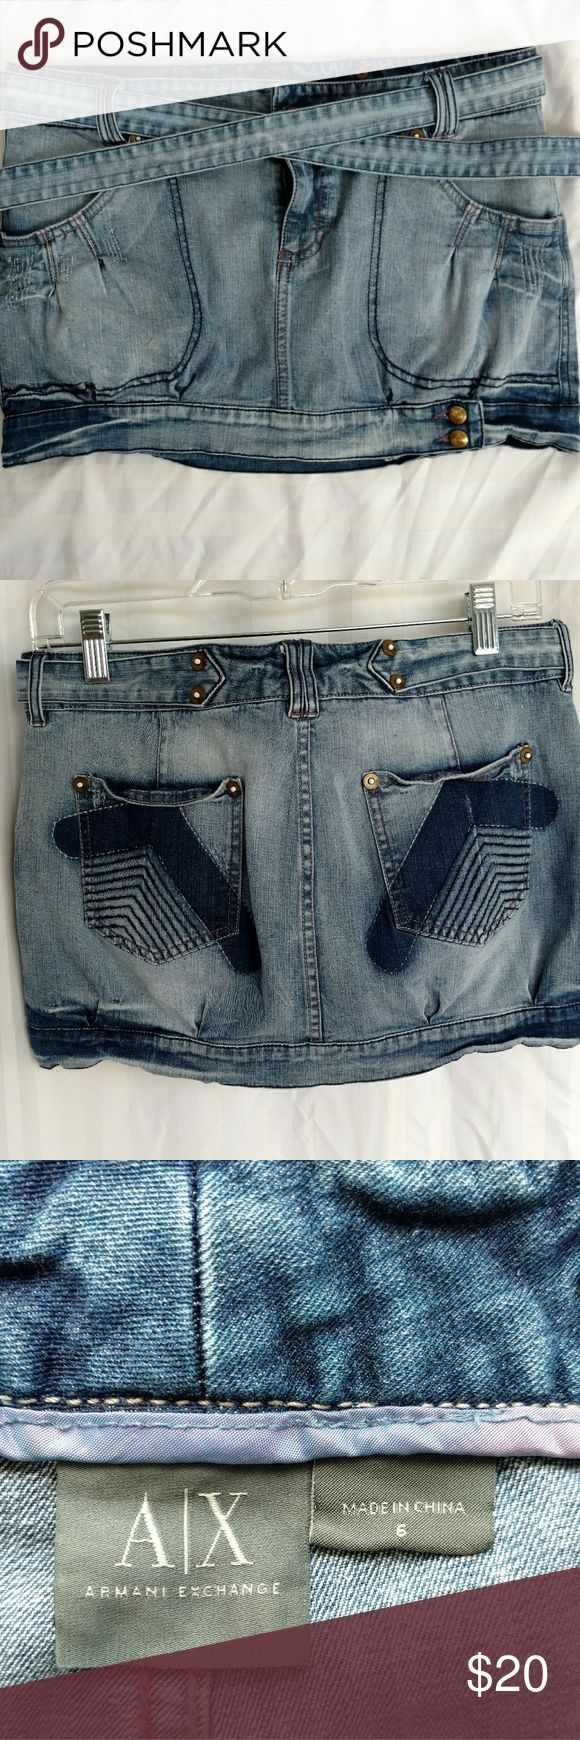 """A/X denim mini skirt Armani Exchange denim mini-skirt. Cute button embellishments at the hem. Measures approximately 16"""" at the waist and 13"""" long.  All offers will be considered. Thanks for looking! Armani Exchange Skirts Mini"""